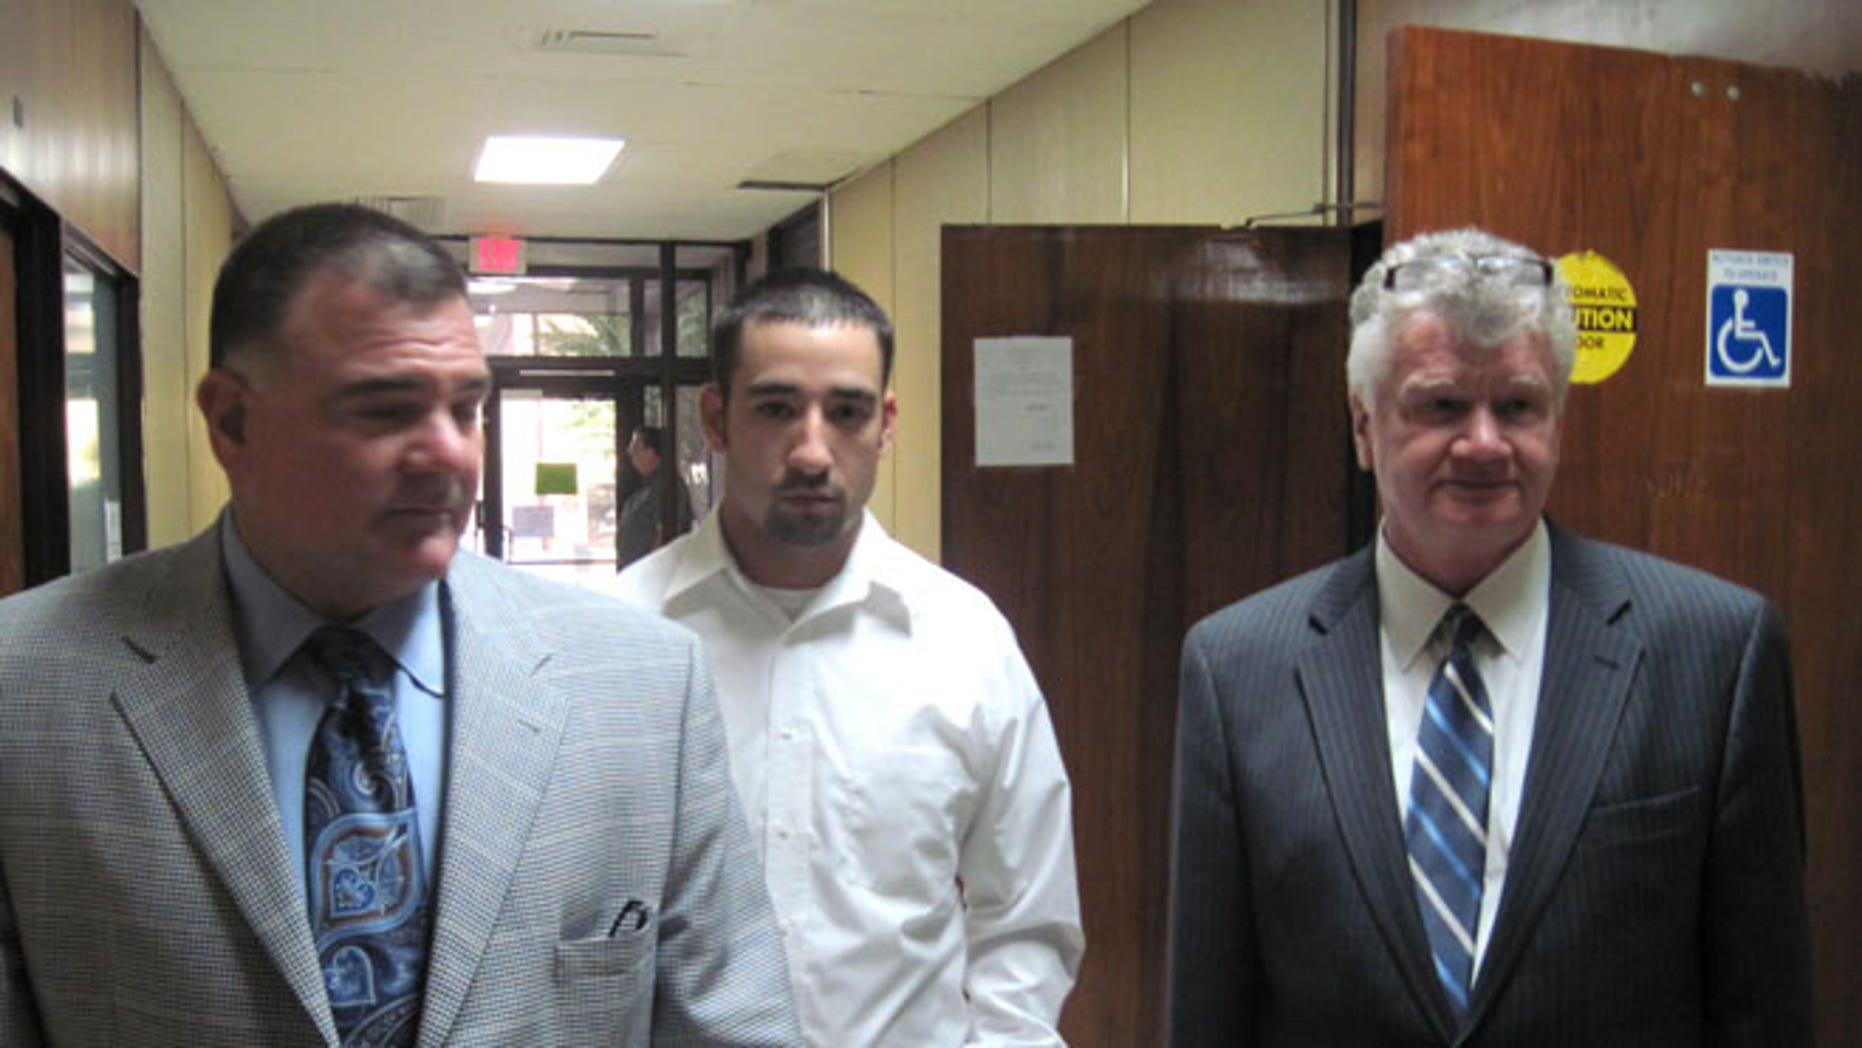 Oct. 22, 2010: Former Winnfield Police Officer Scott Nugent, center, walks with his attorneys Phillip Terrell, left and George Higgins in the Winn Parish Courthouse in Winnfield, La.